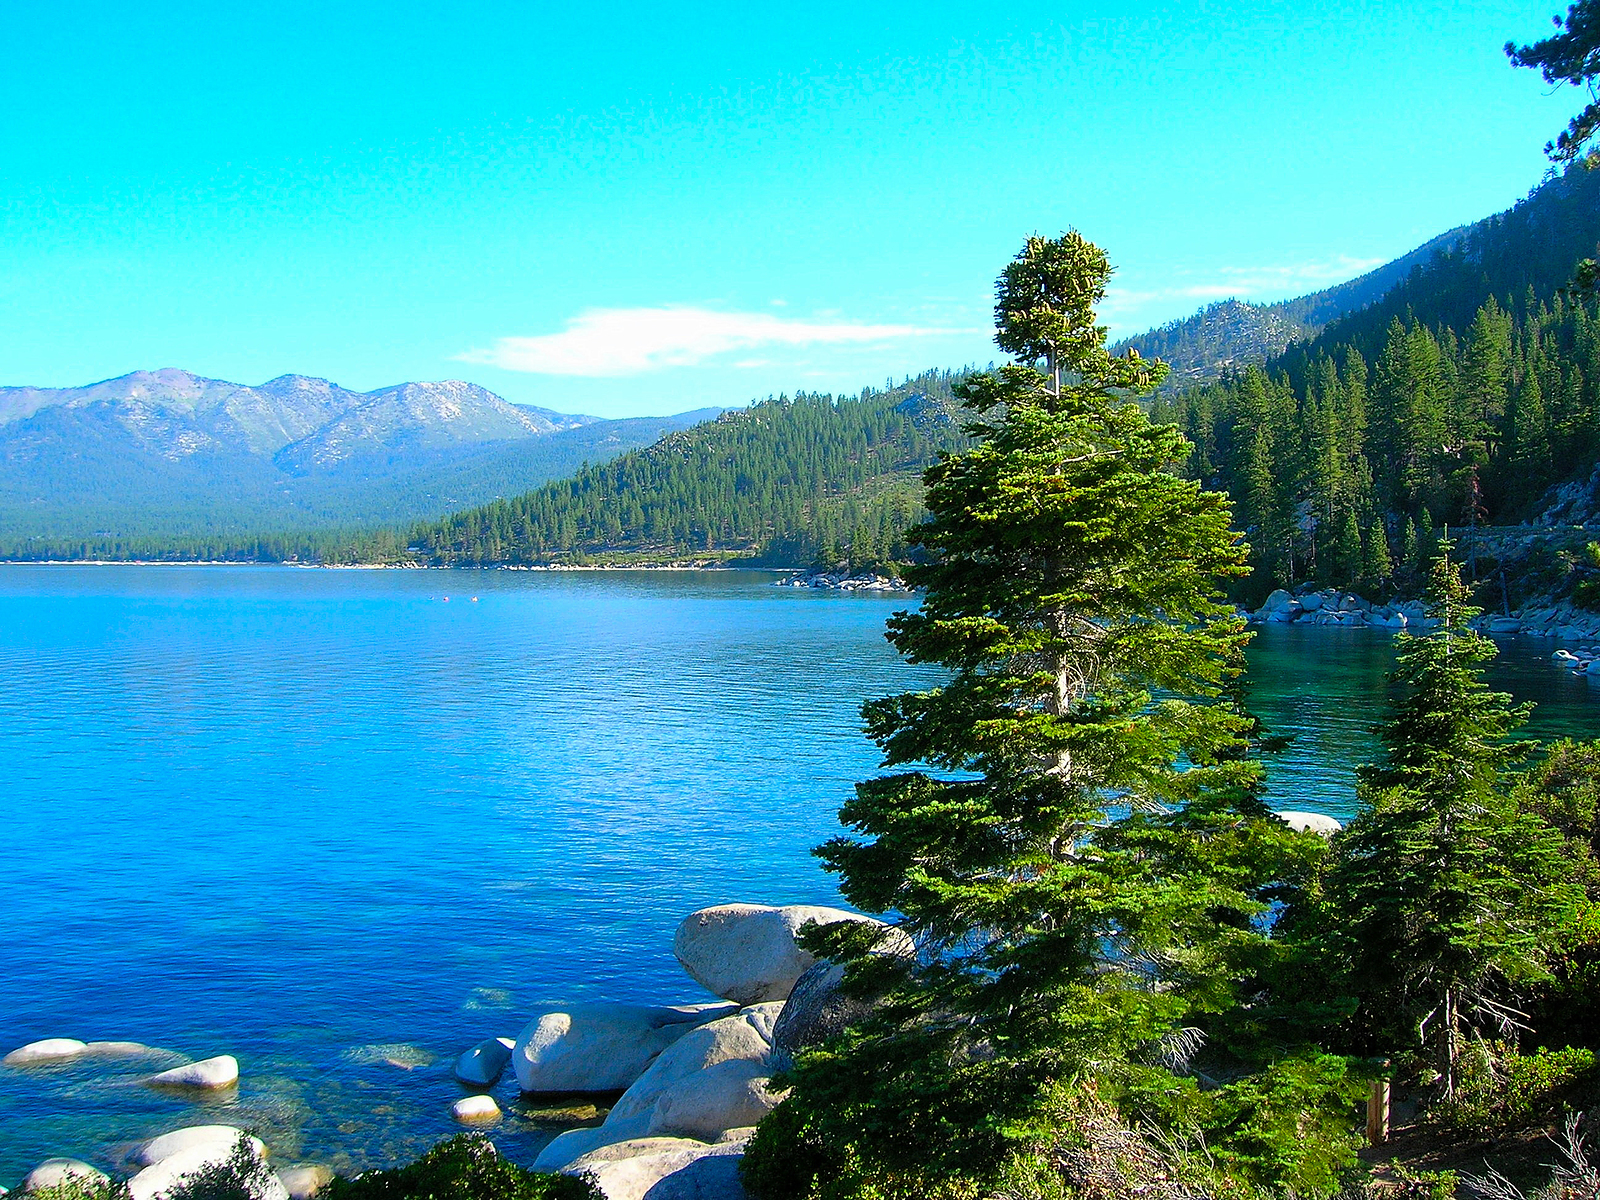 lake tahoe hd wallpaper lake tahoe hd desktop wallpaper lake 1600x1200